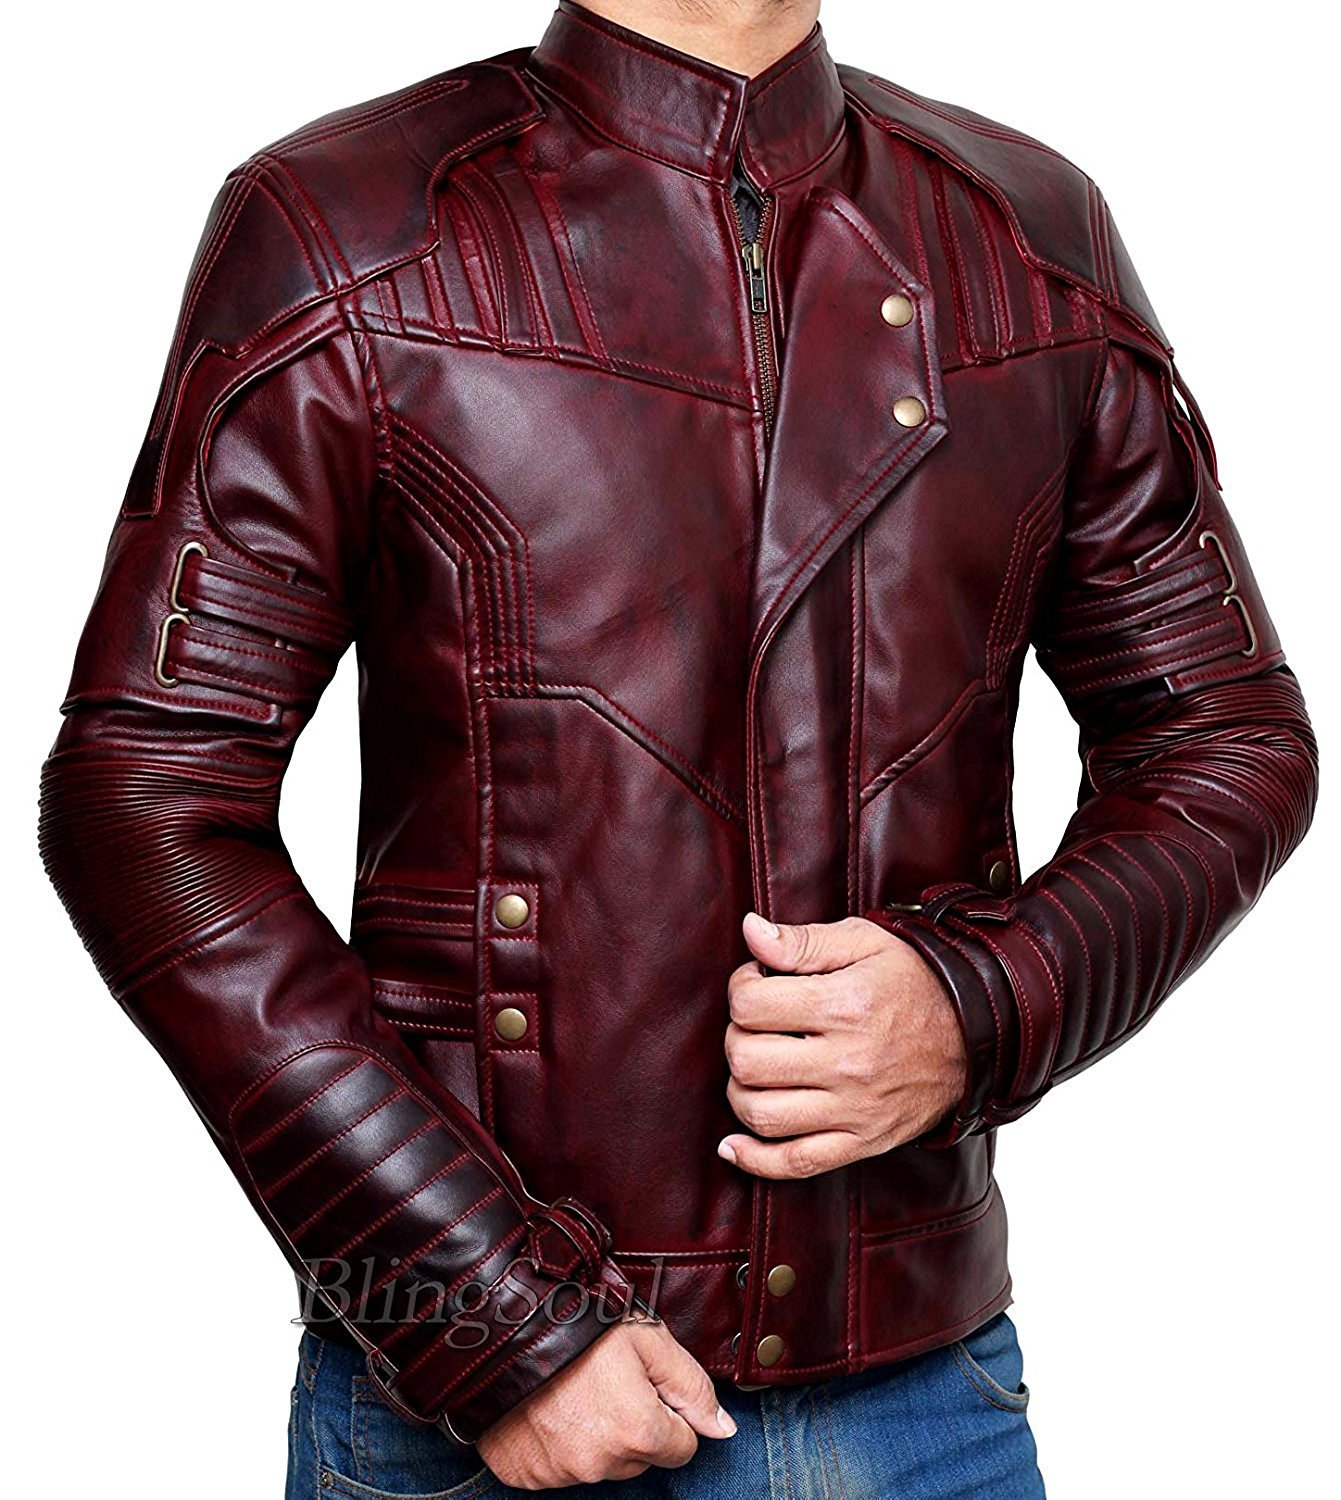 Superhero Costume PU Leather Jacket Collection (L, Star Lord Red) [PU-GLX3-RD-L]